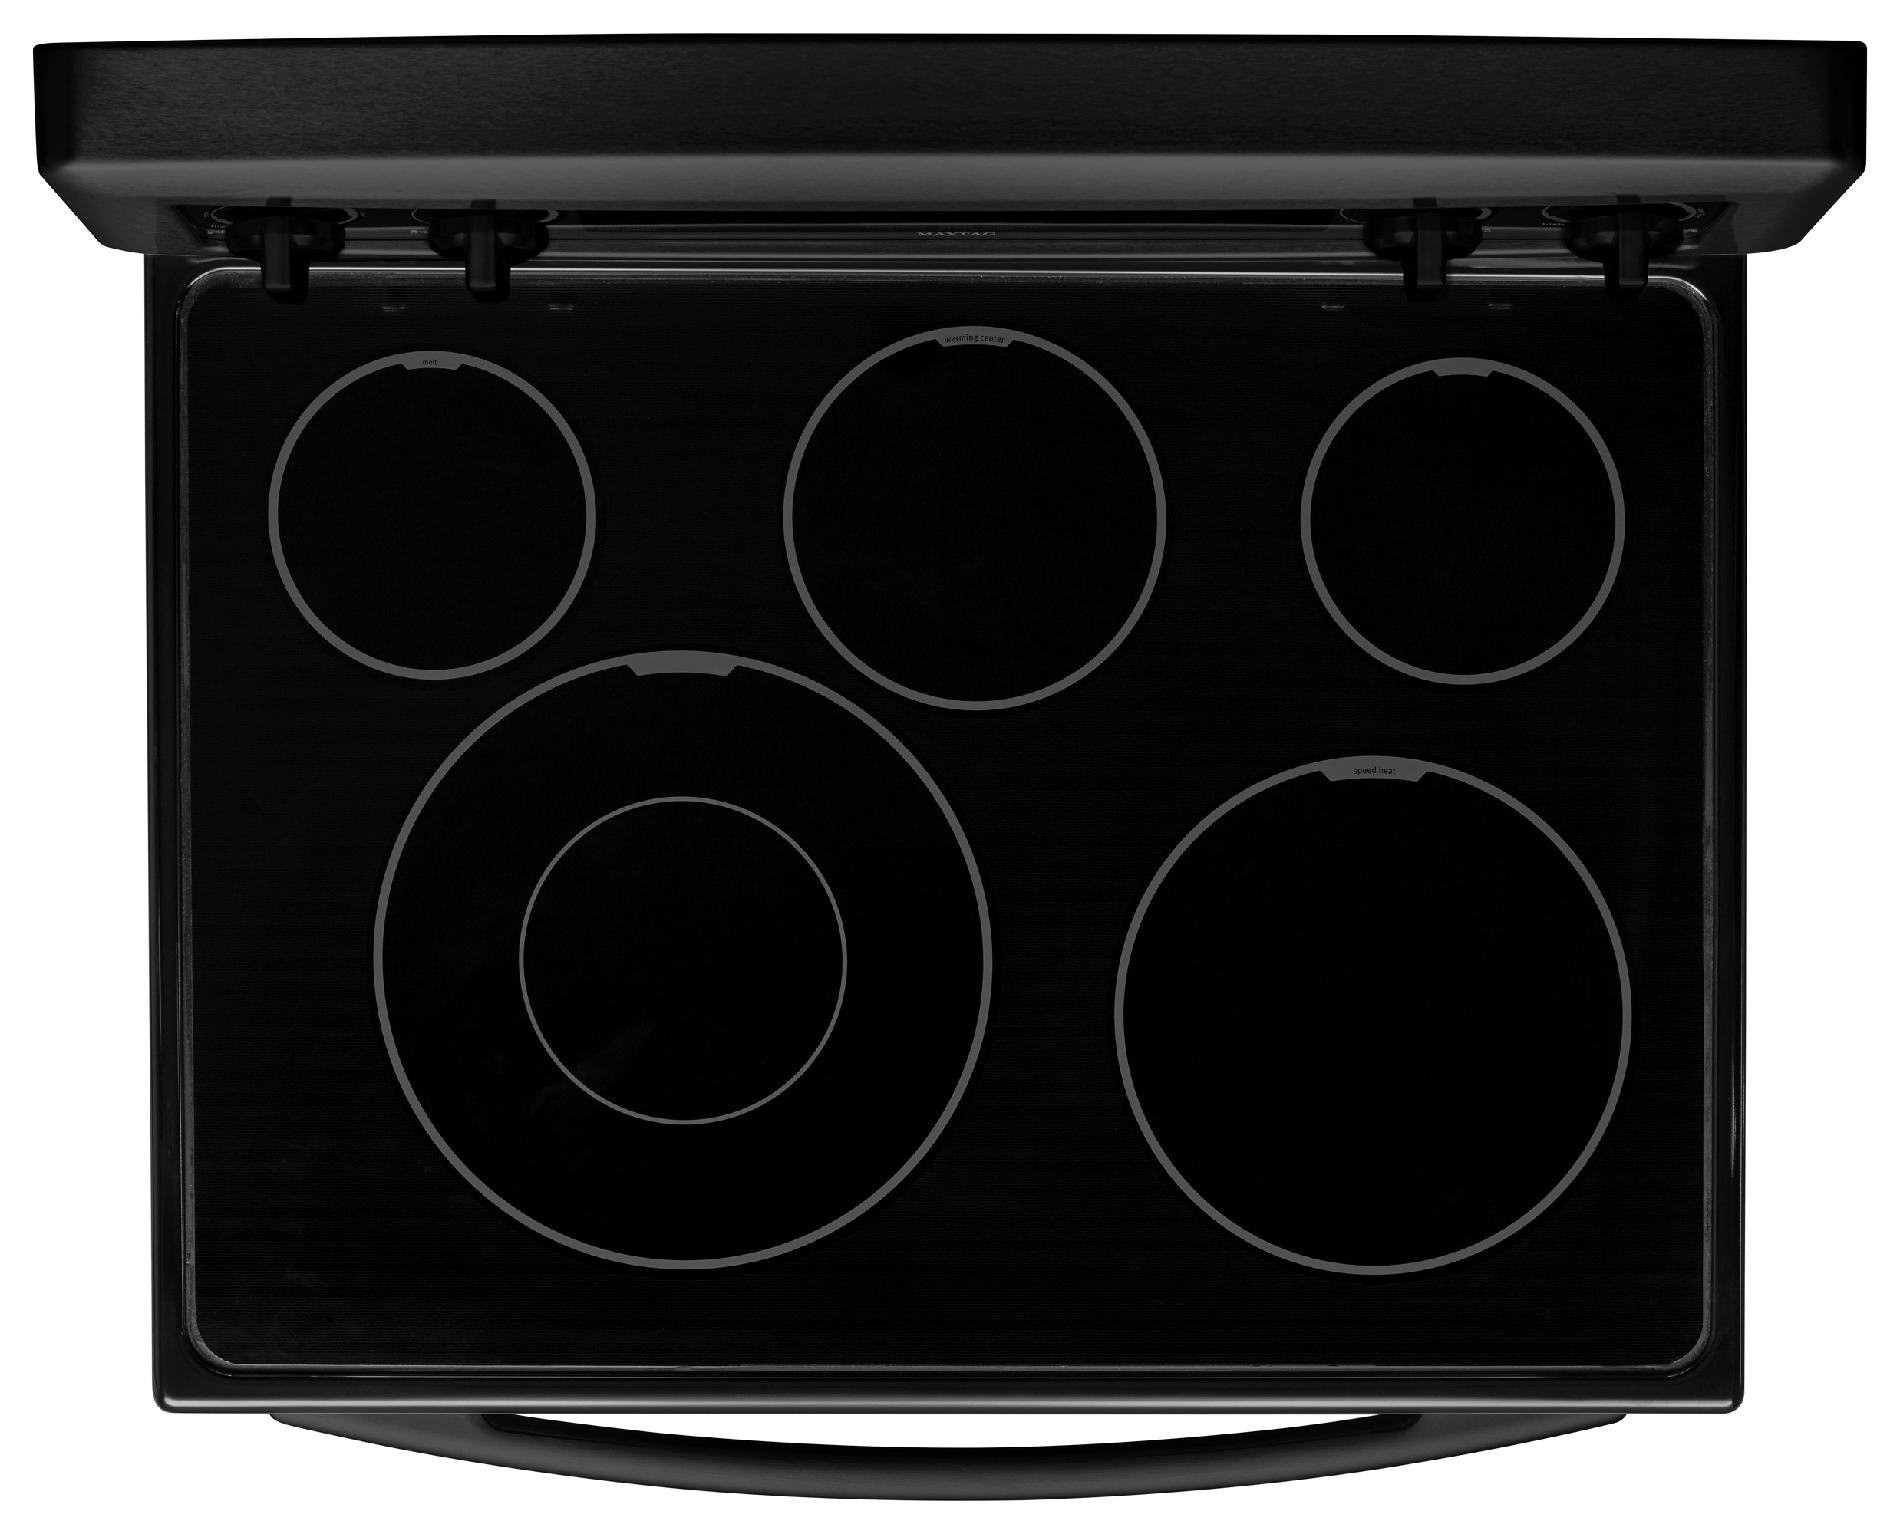 "Maytag 30"" Electric Range w/ Even-Air™ Convection - Black"